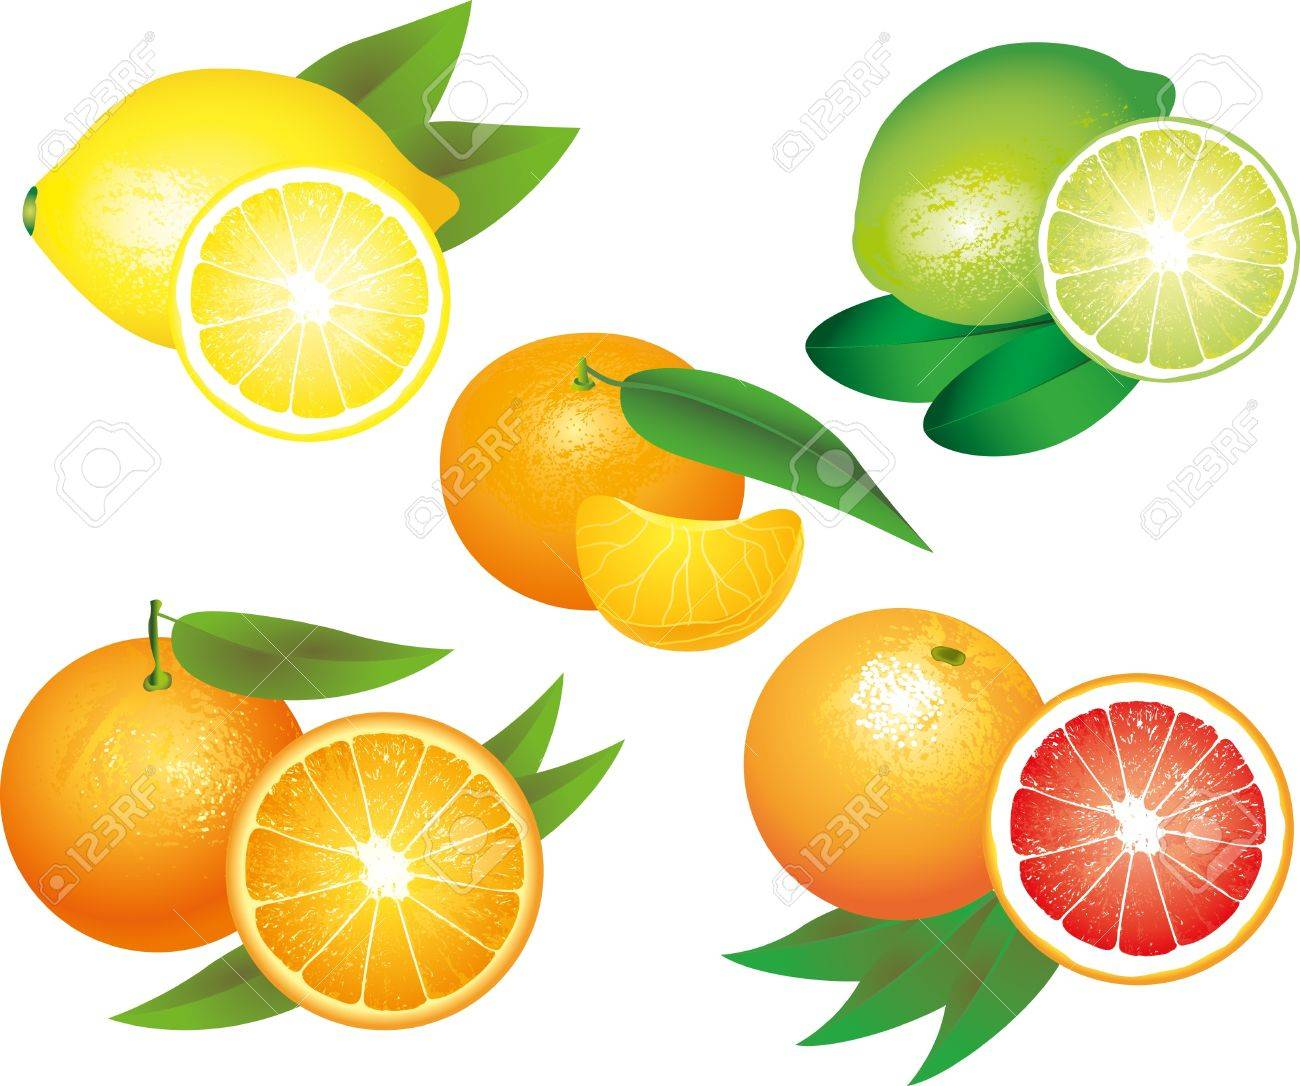 citrus fruits picture-realistic illustration set Stock Vector - 18728929